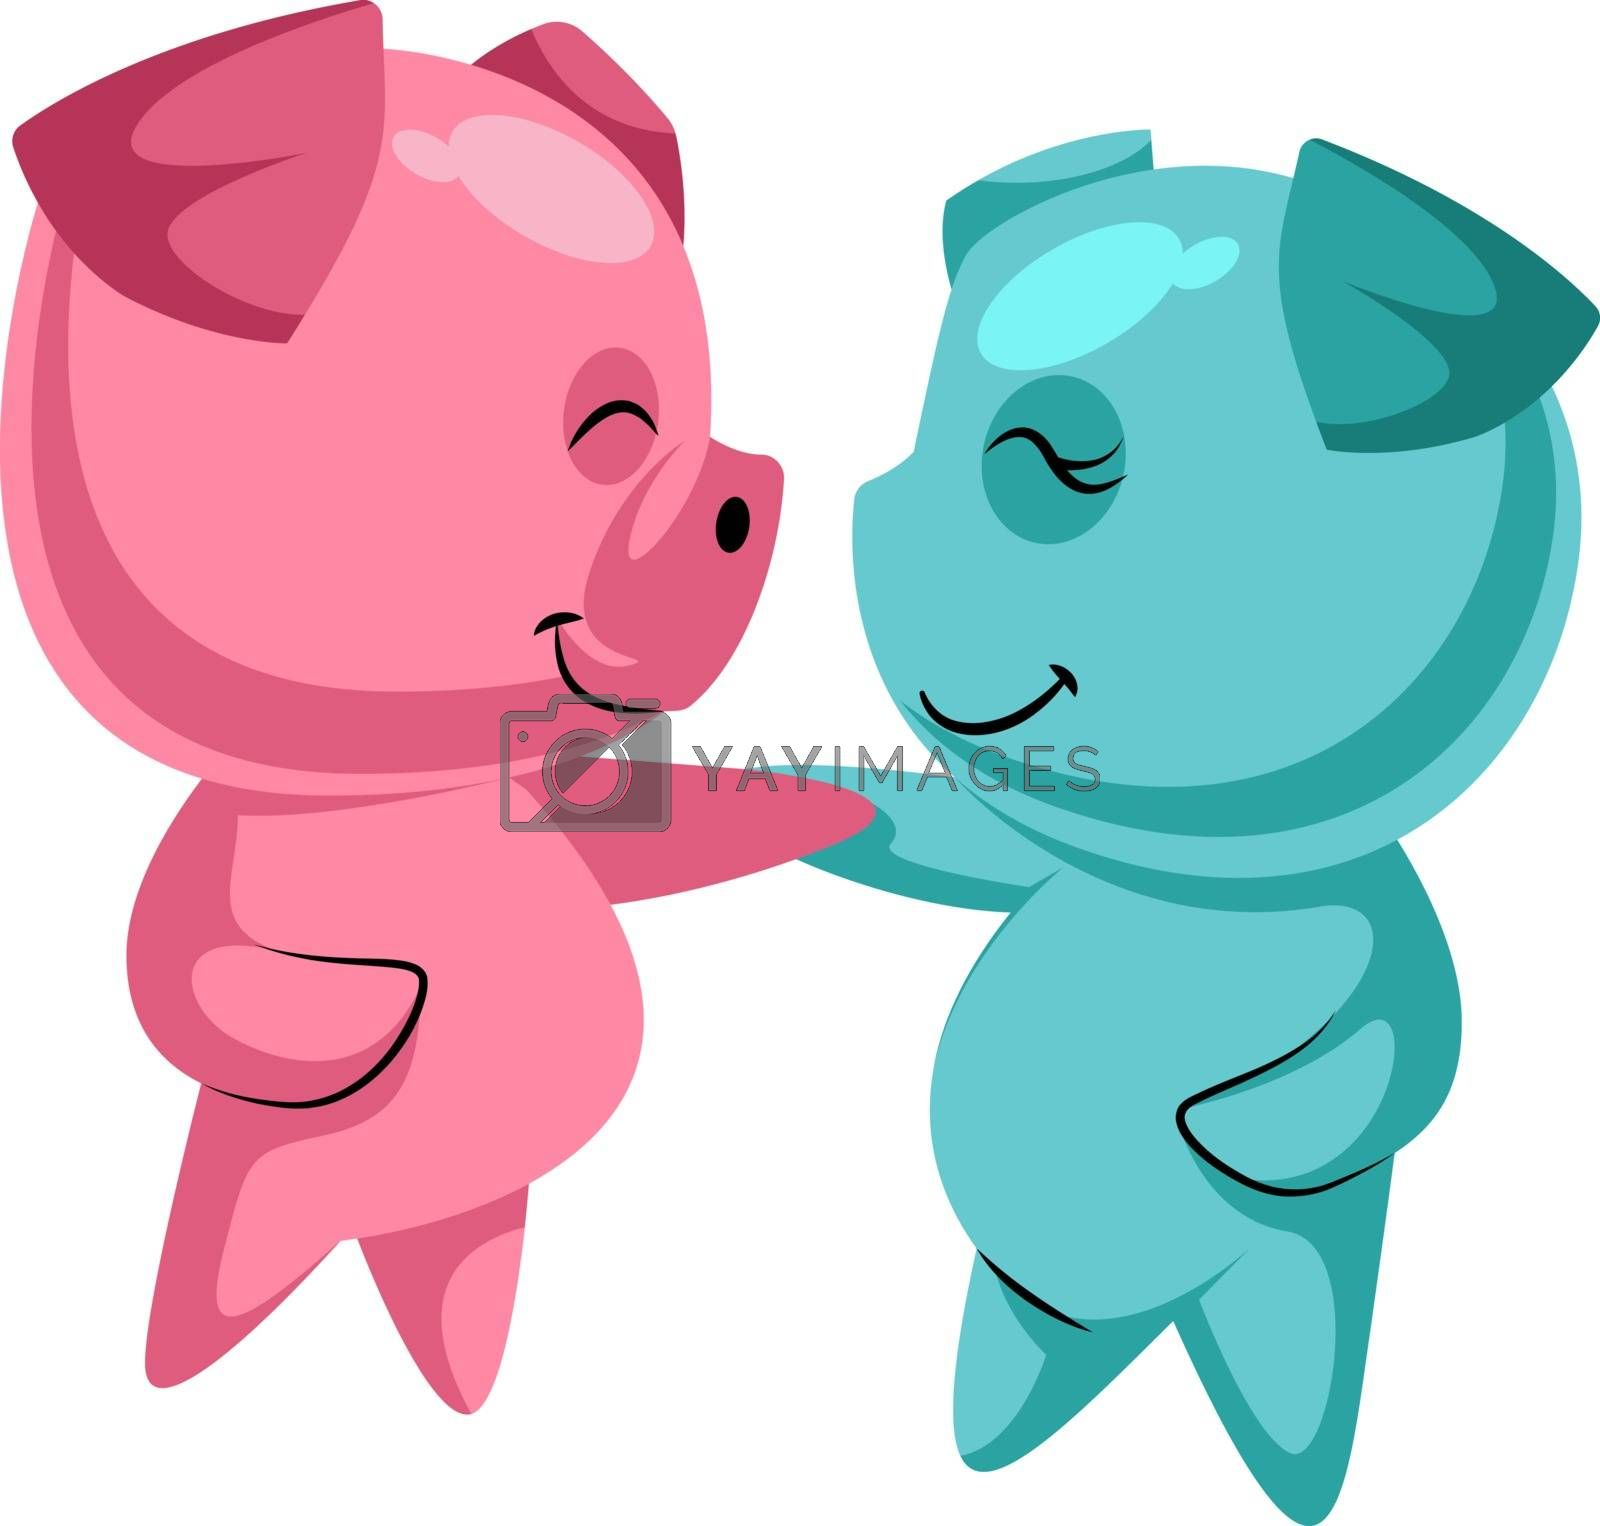 Royalty free image of Couple of cute pigs in love illustration vector on white backgro by Morphart